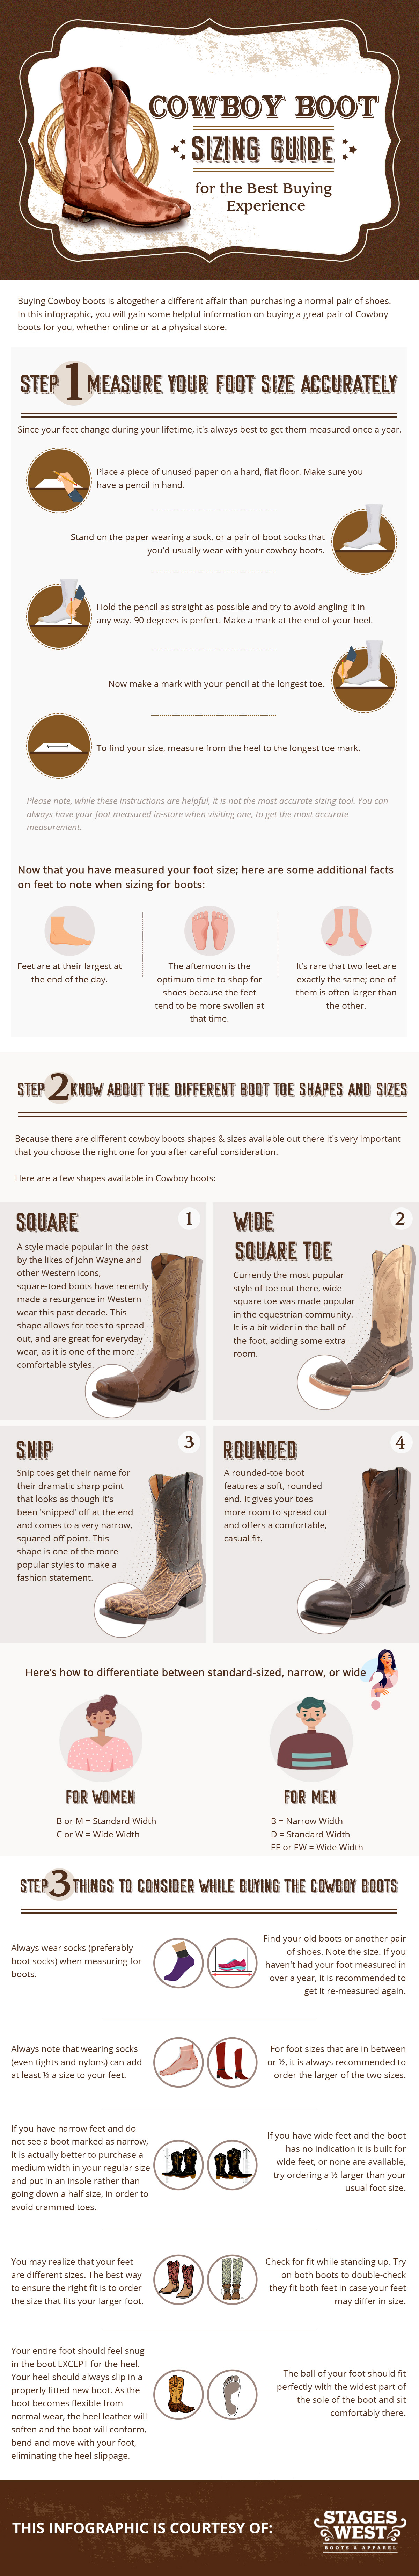 cowboy boot sizing guide